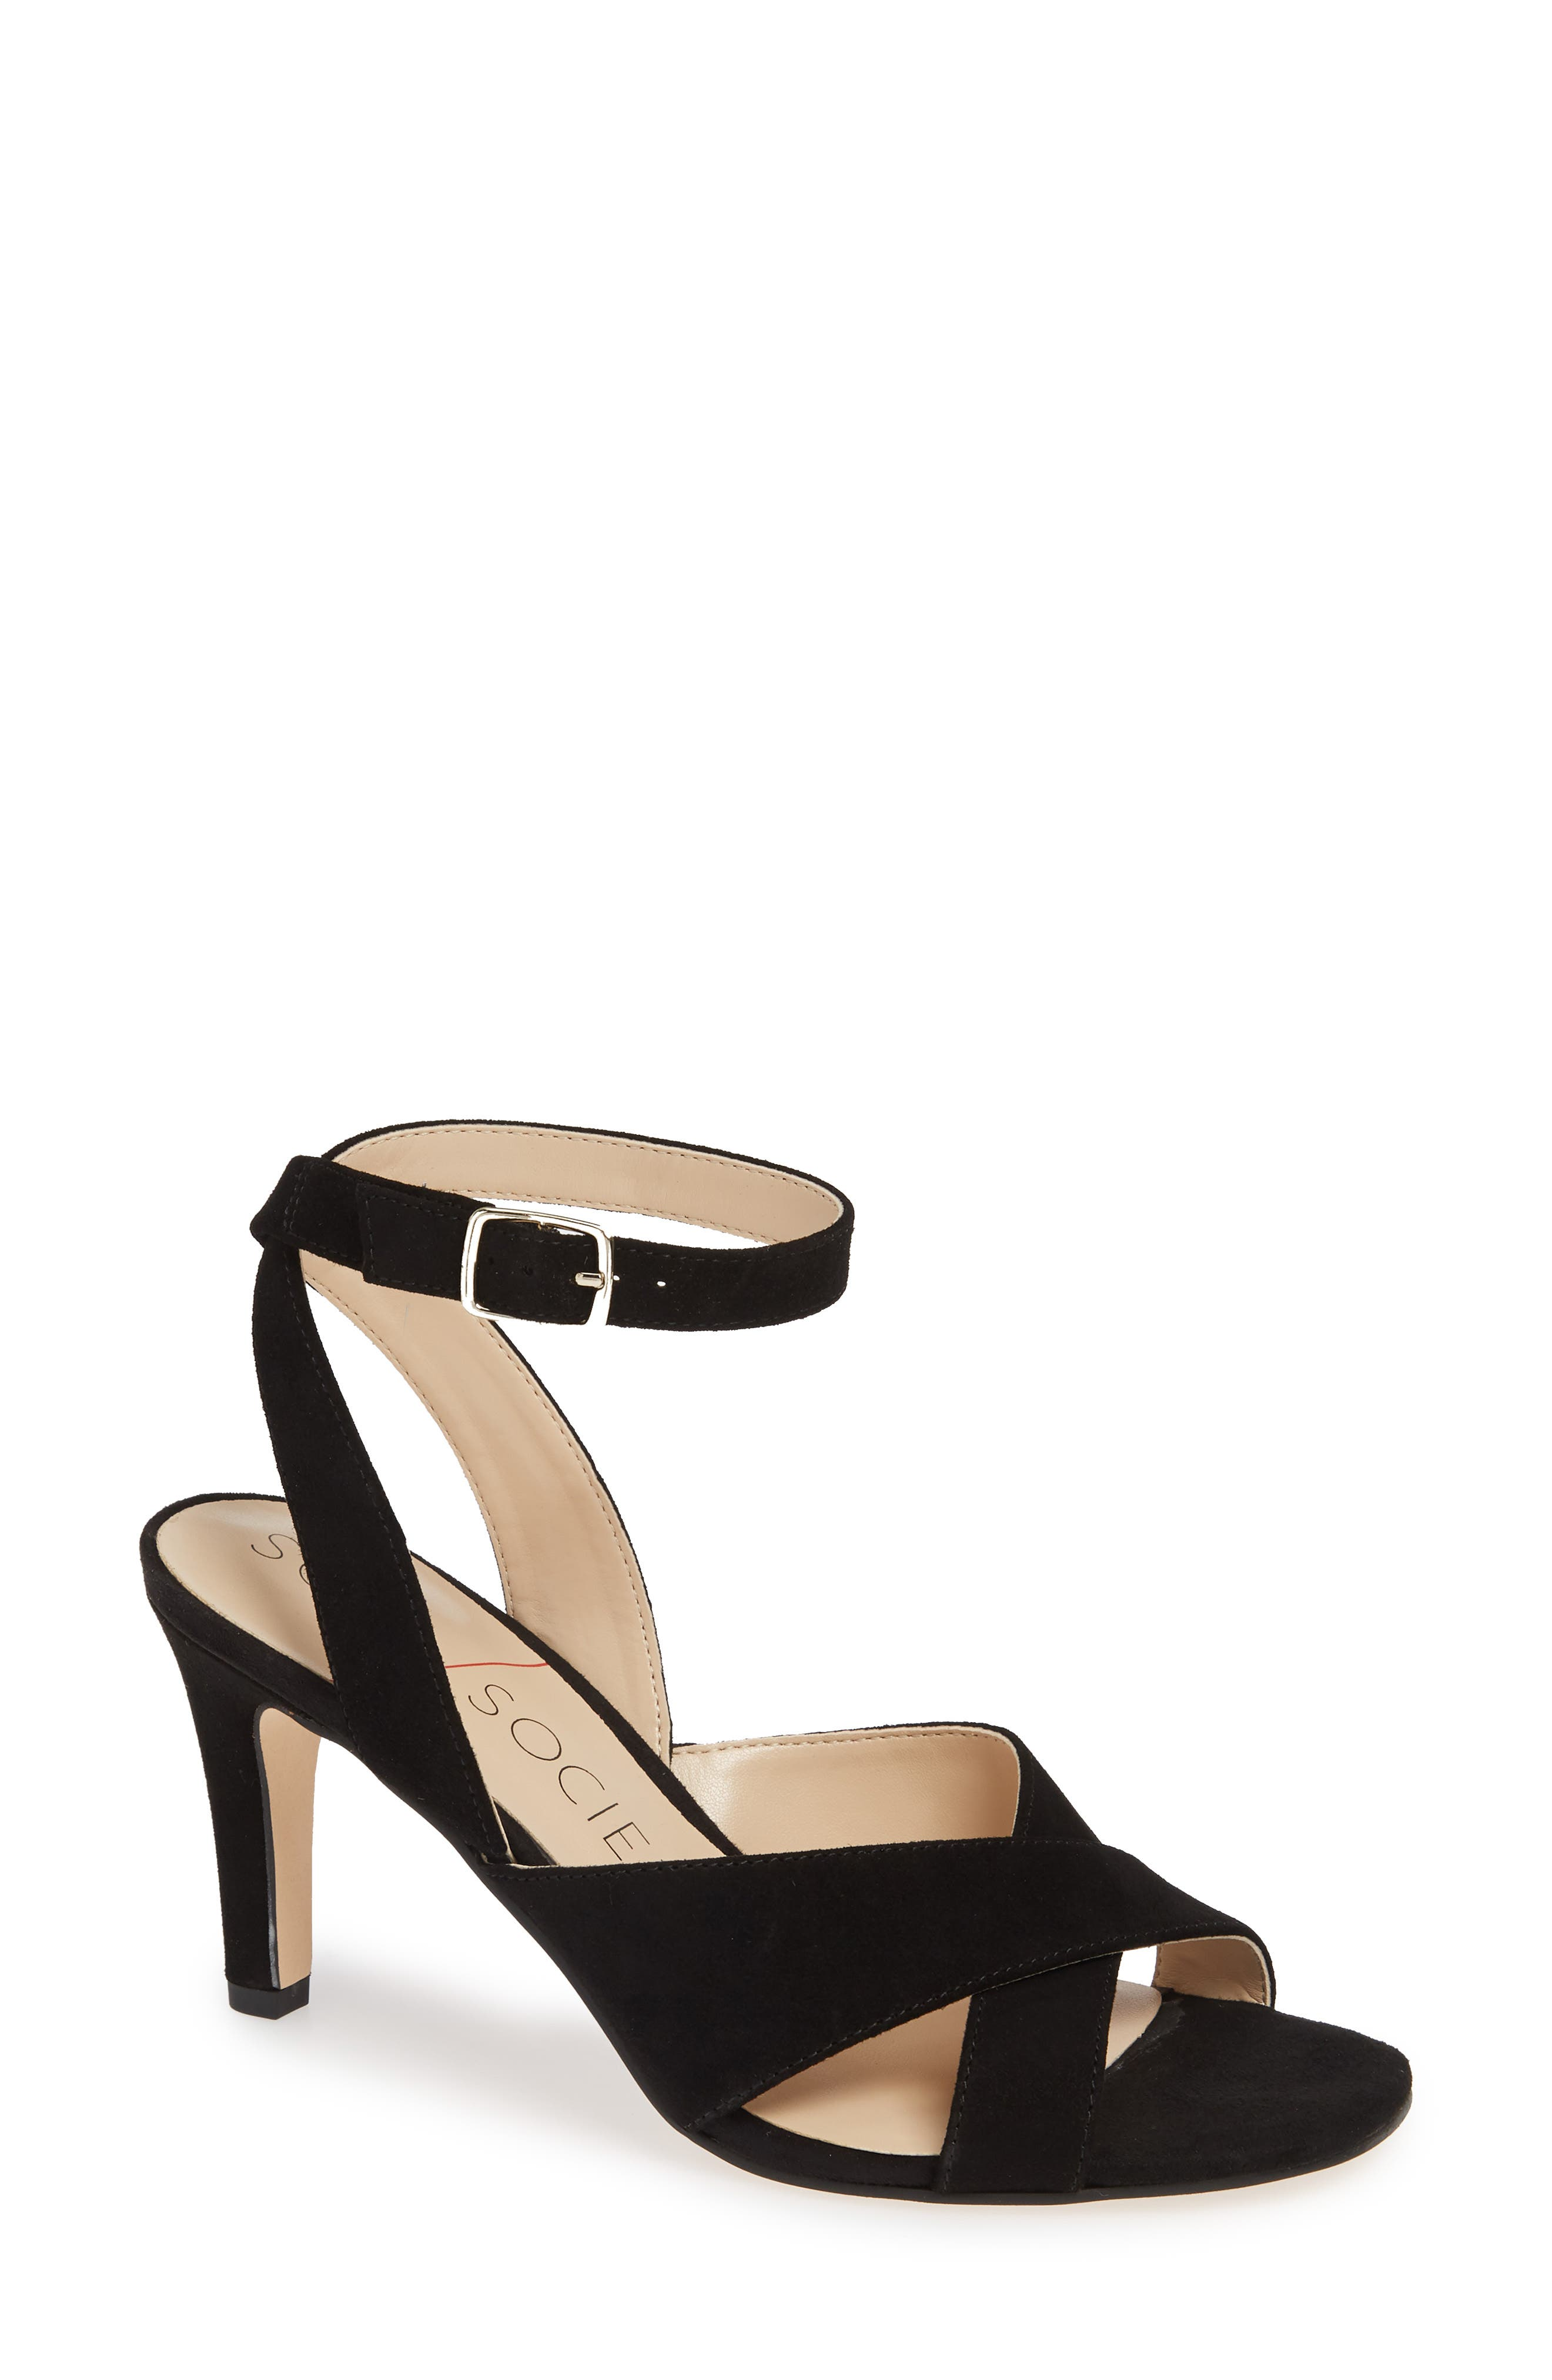 Sole Society Cassidea Ankle Strap Sandal, Black